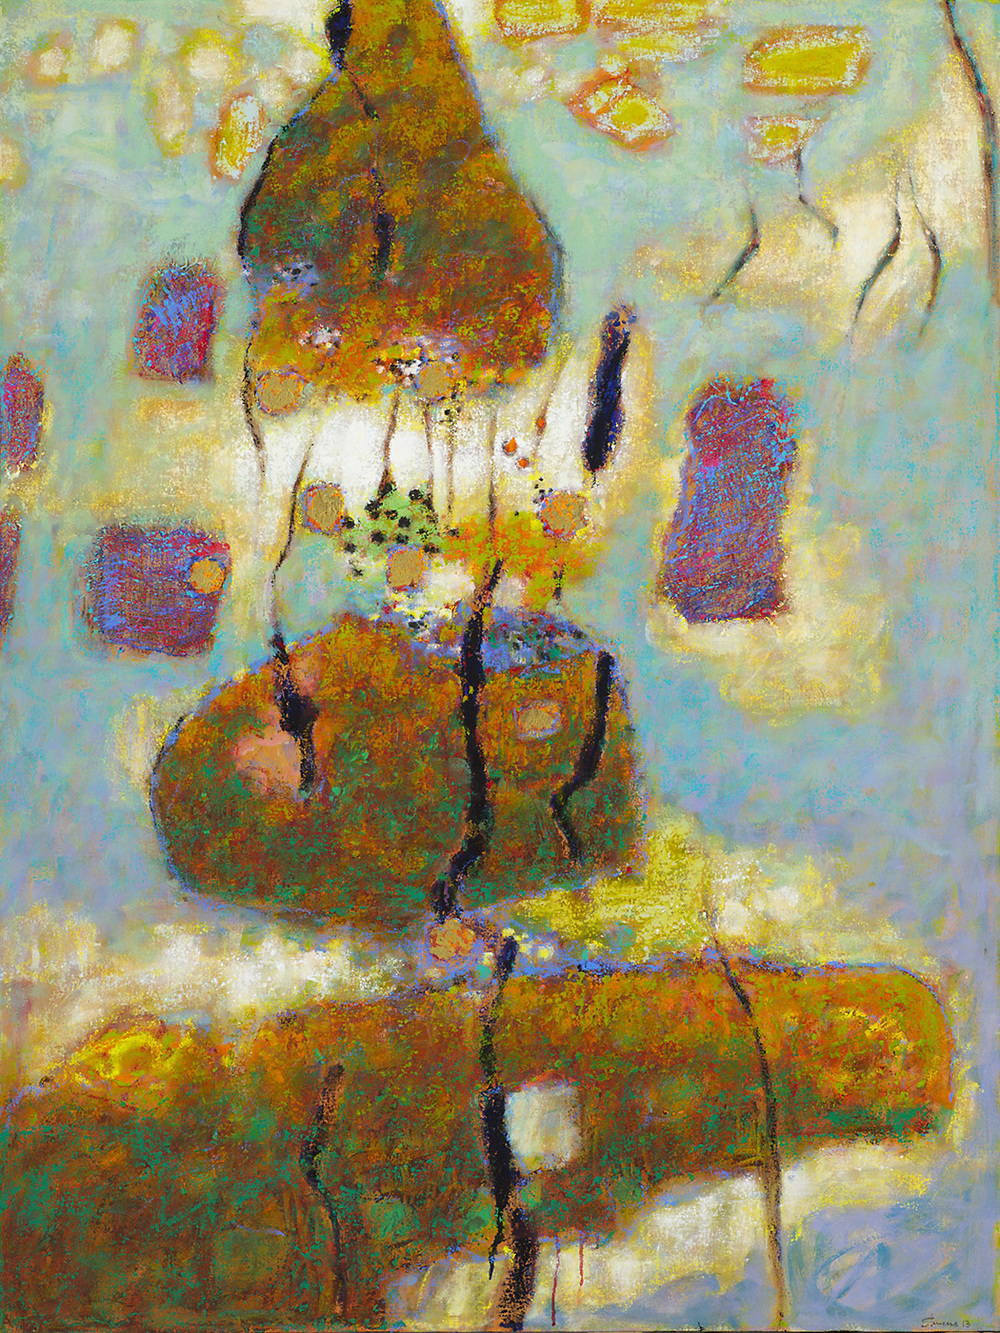 Psychic Entity   | oil on canvas | 48 x 32"